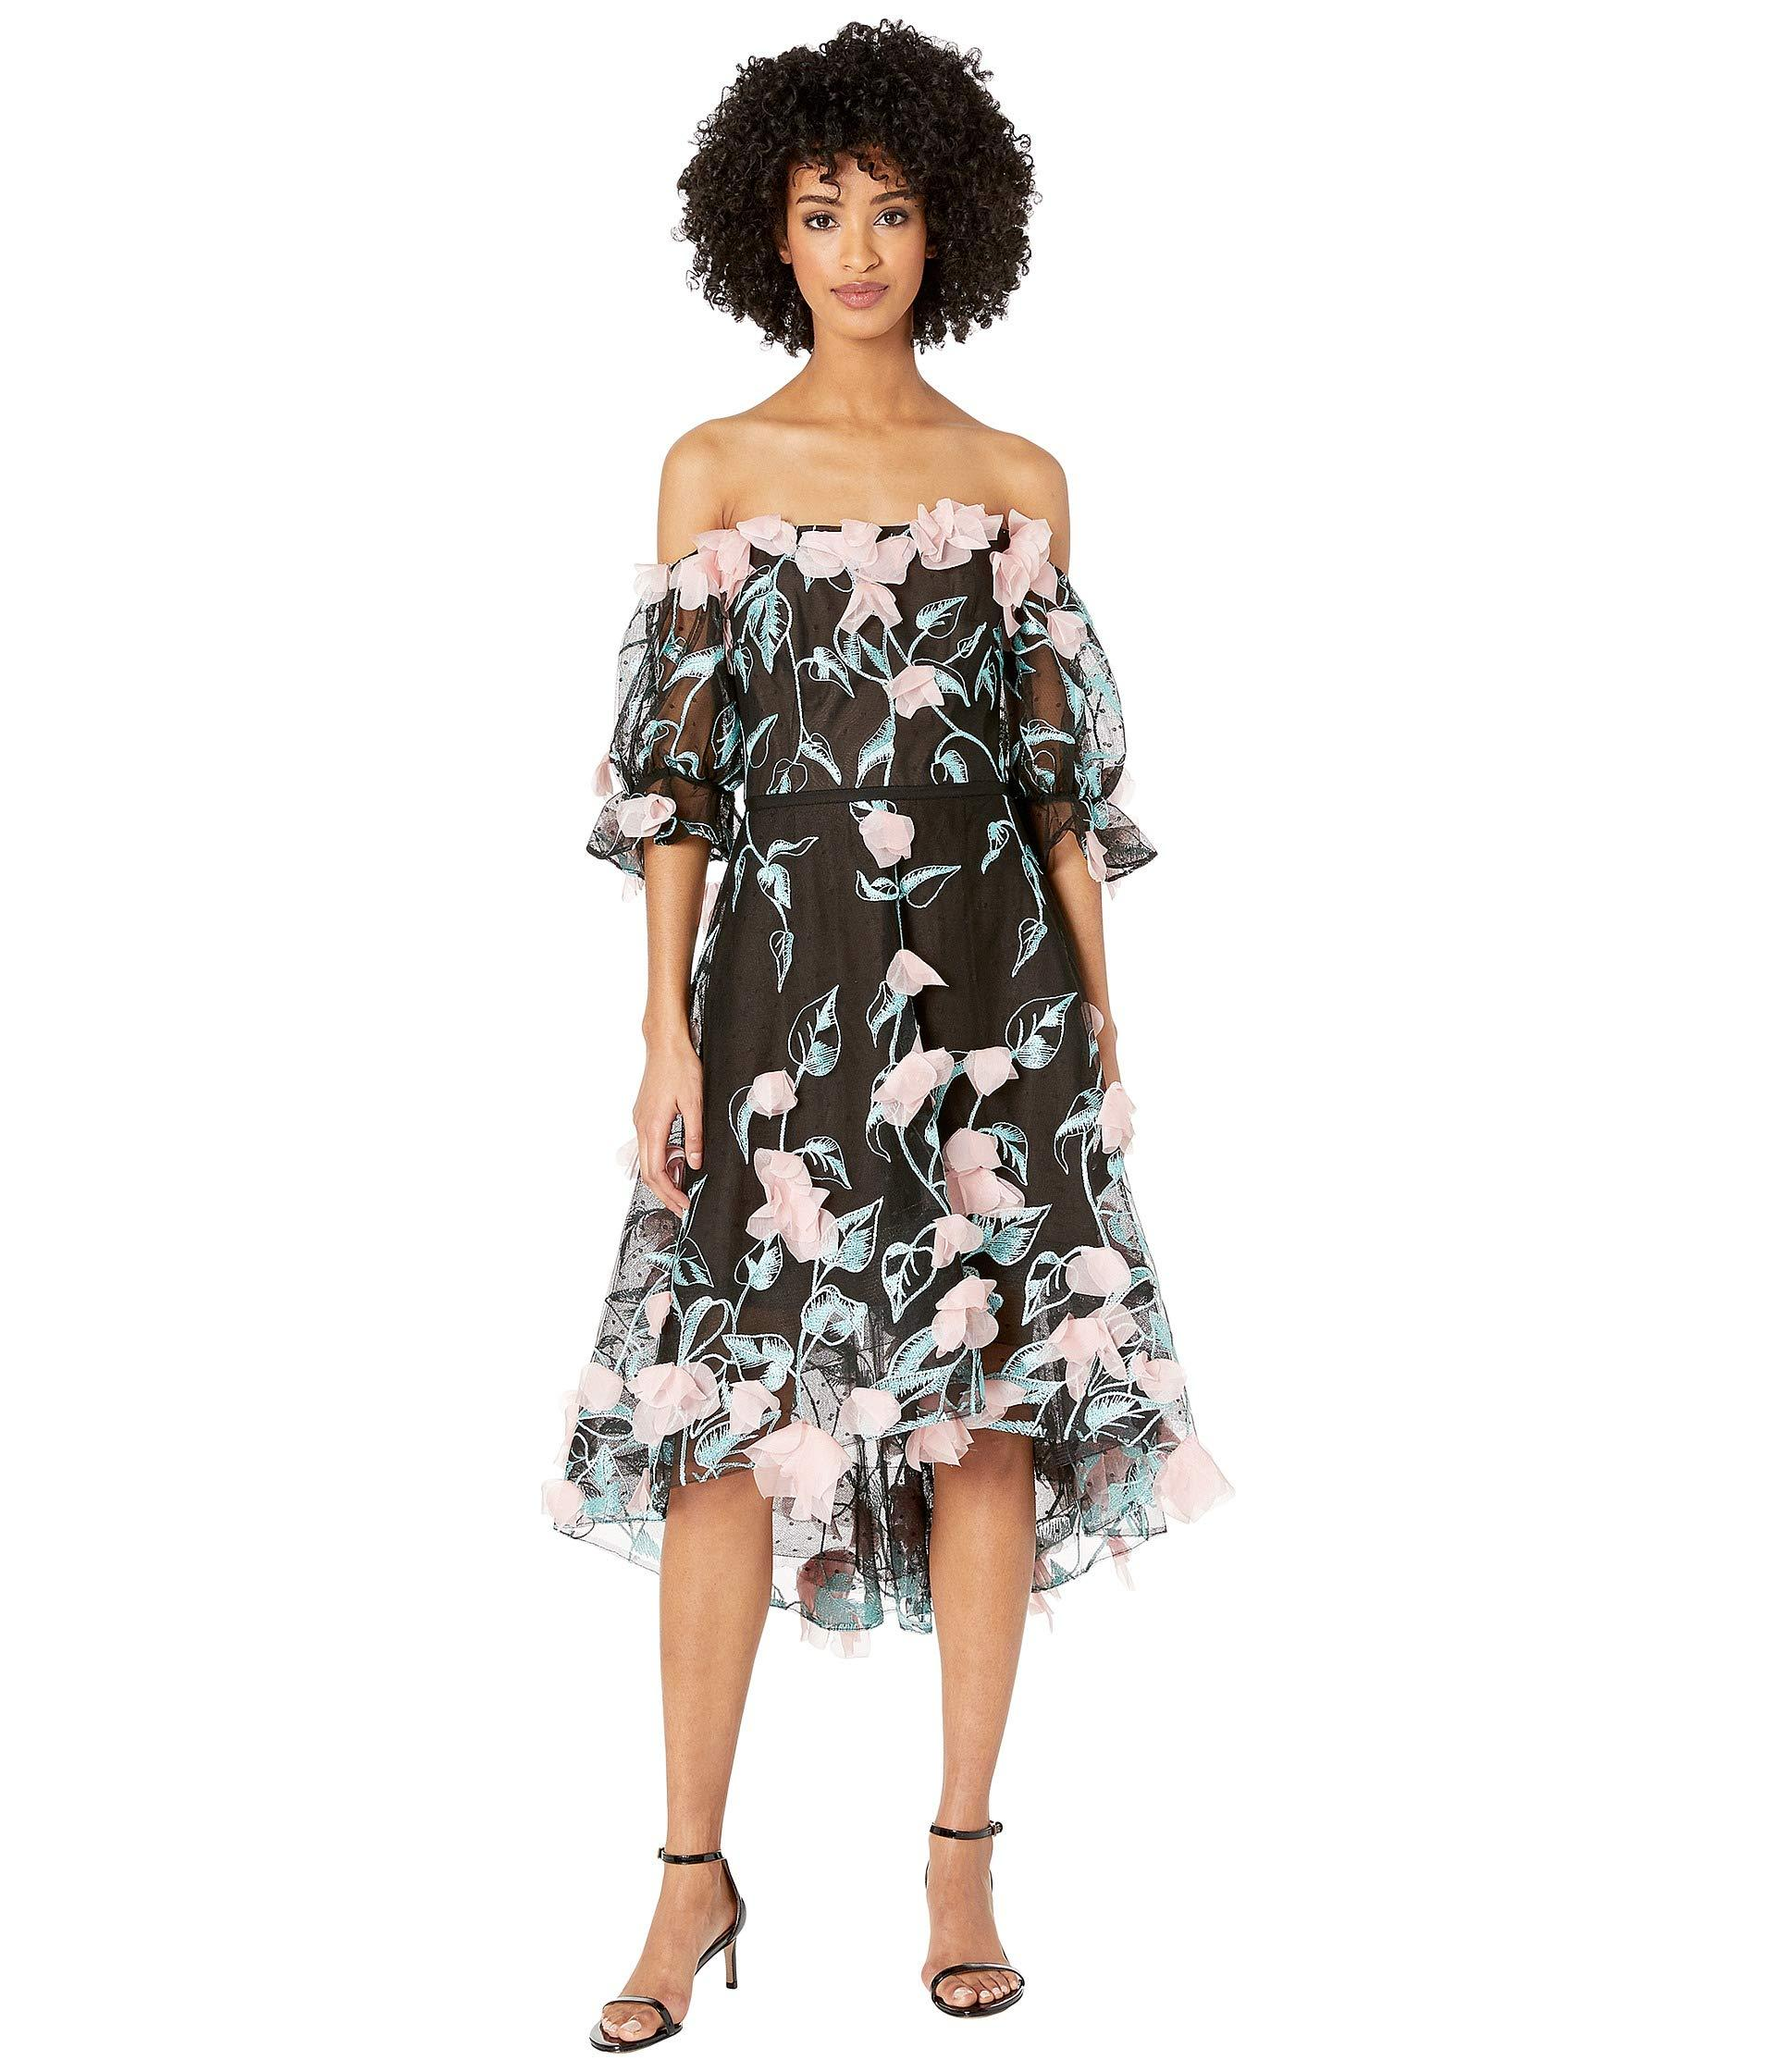 45b6ff7ac98 Marchesa notte. Off The Shoulder 3d Floral Embroidered Cocktail With  Blouson Sleeve And Trims (black) Women s Dress